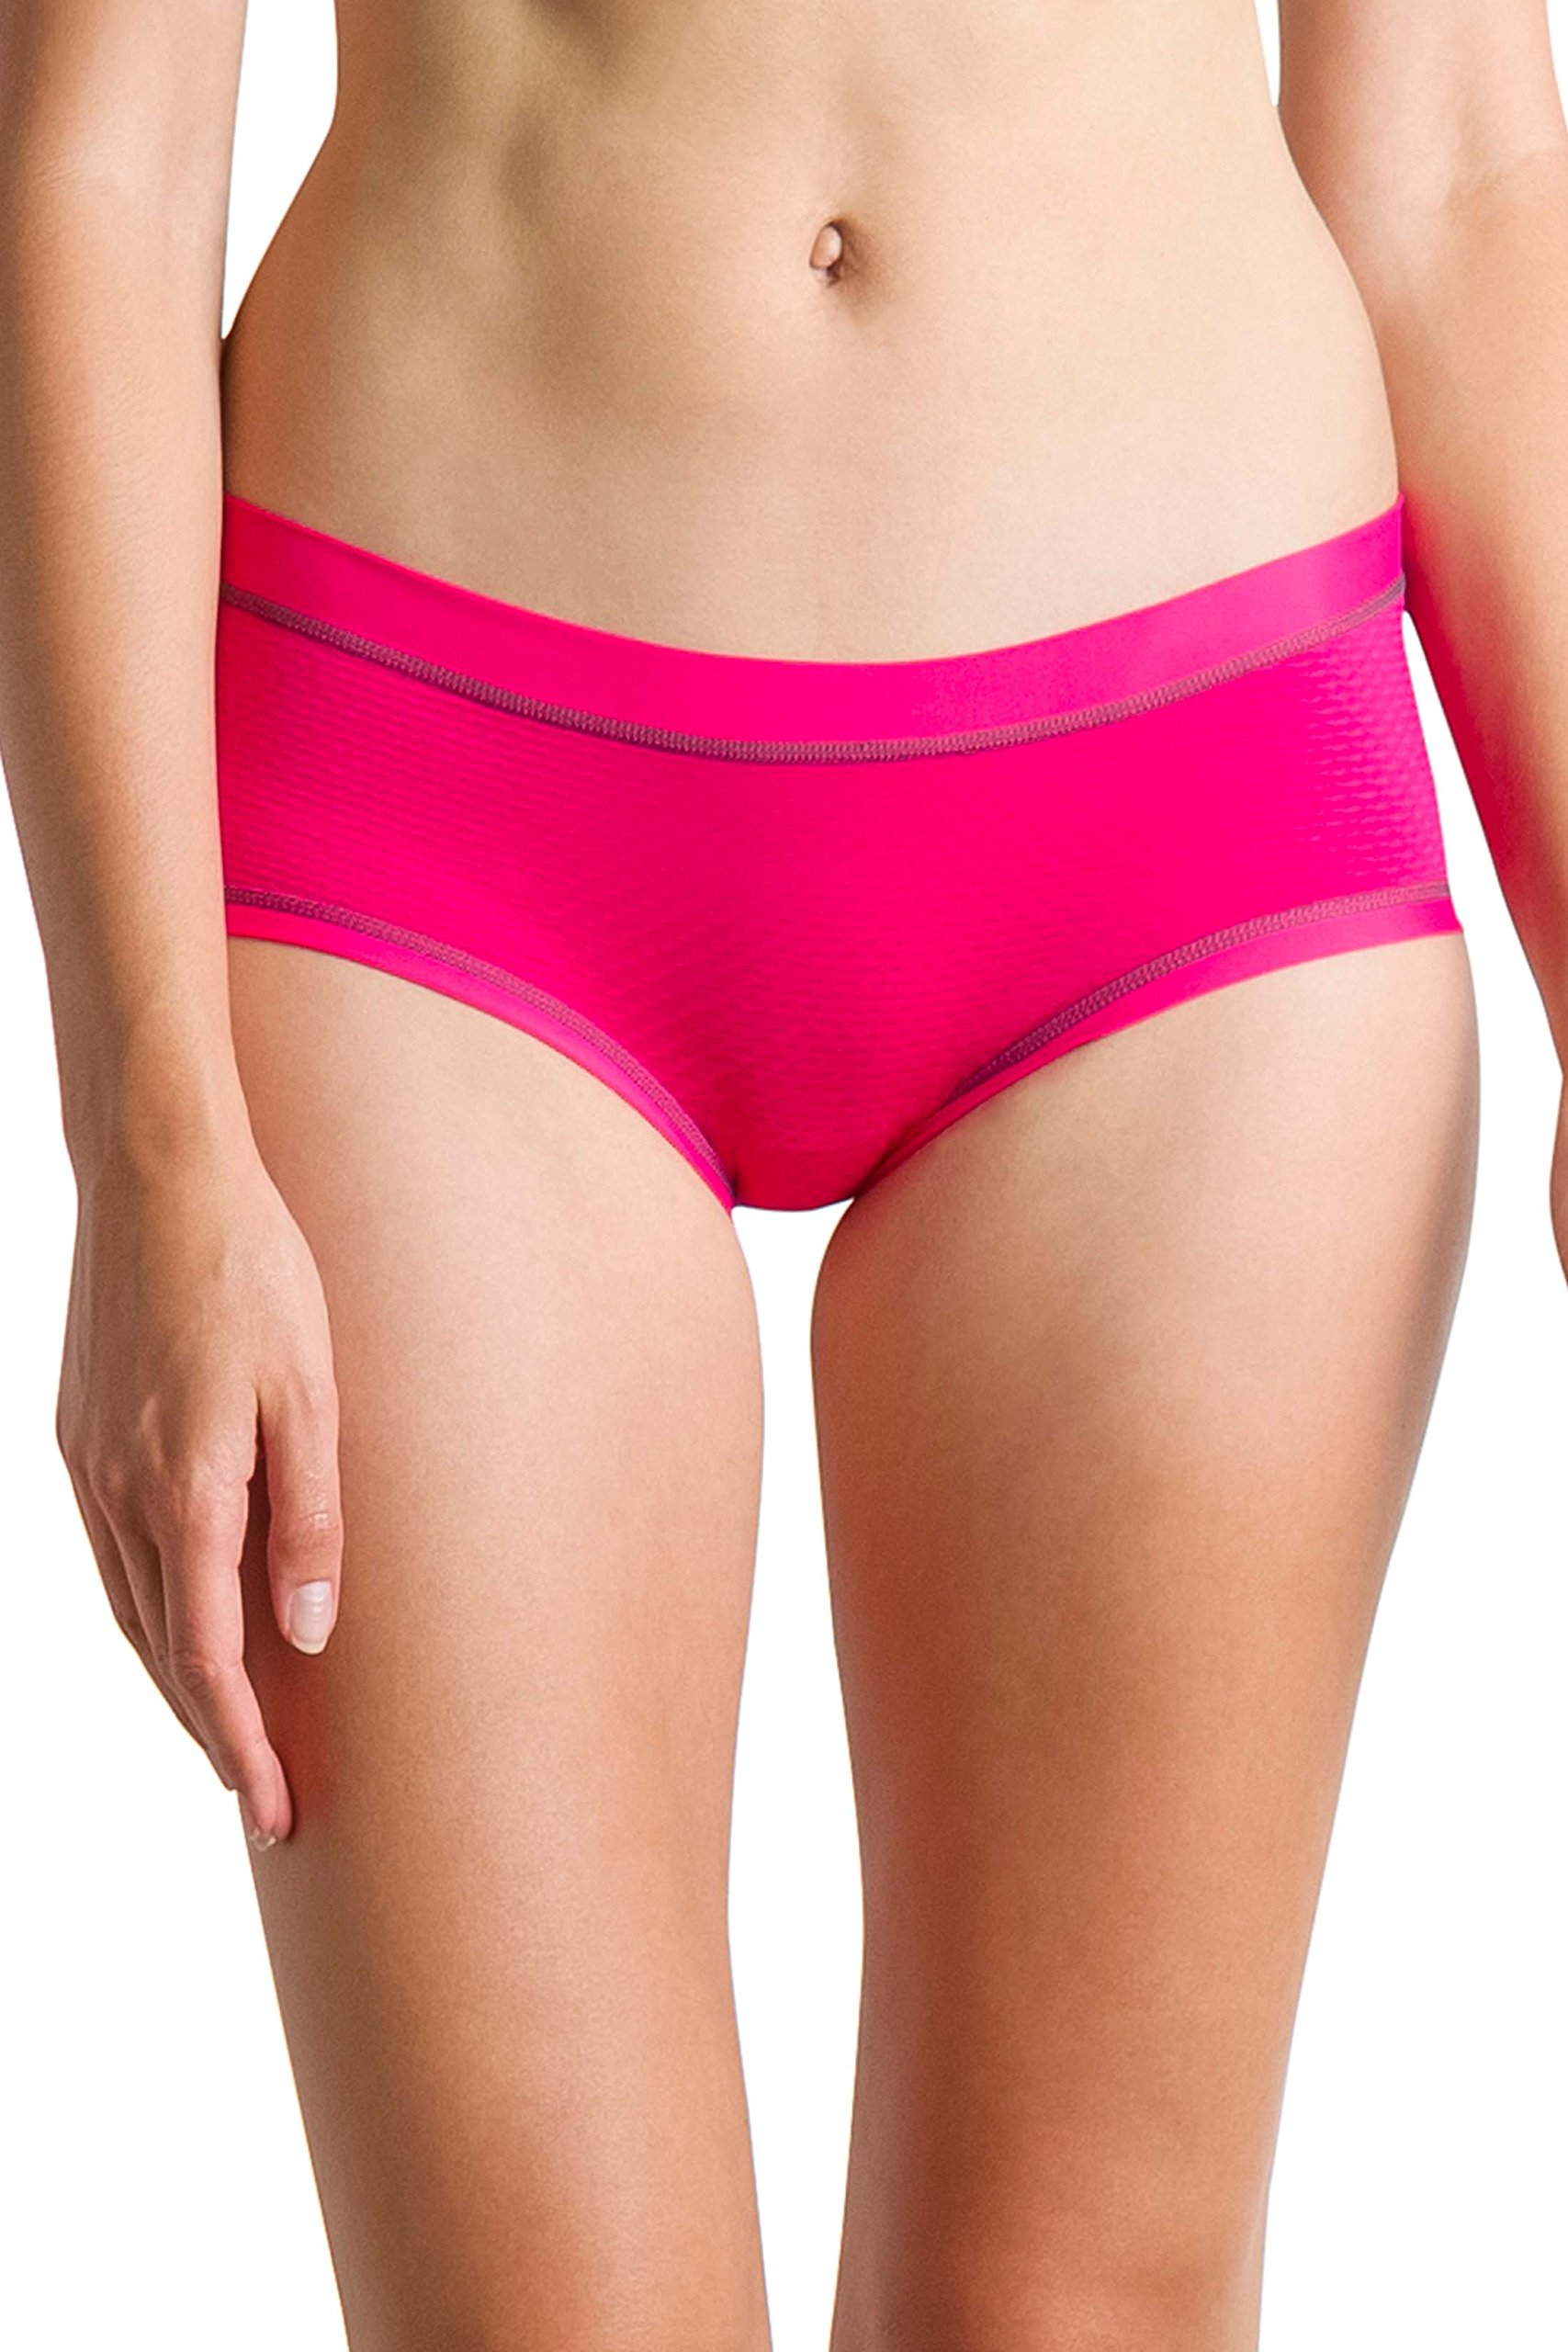 ExOfficio Women's Give-N-Go Sport Mesh Hipkini Underwear, Pink Blush, Medium